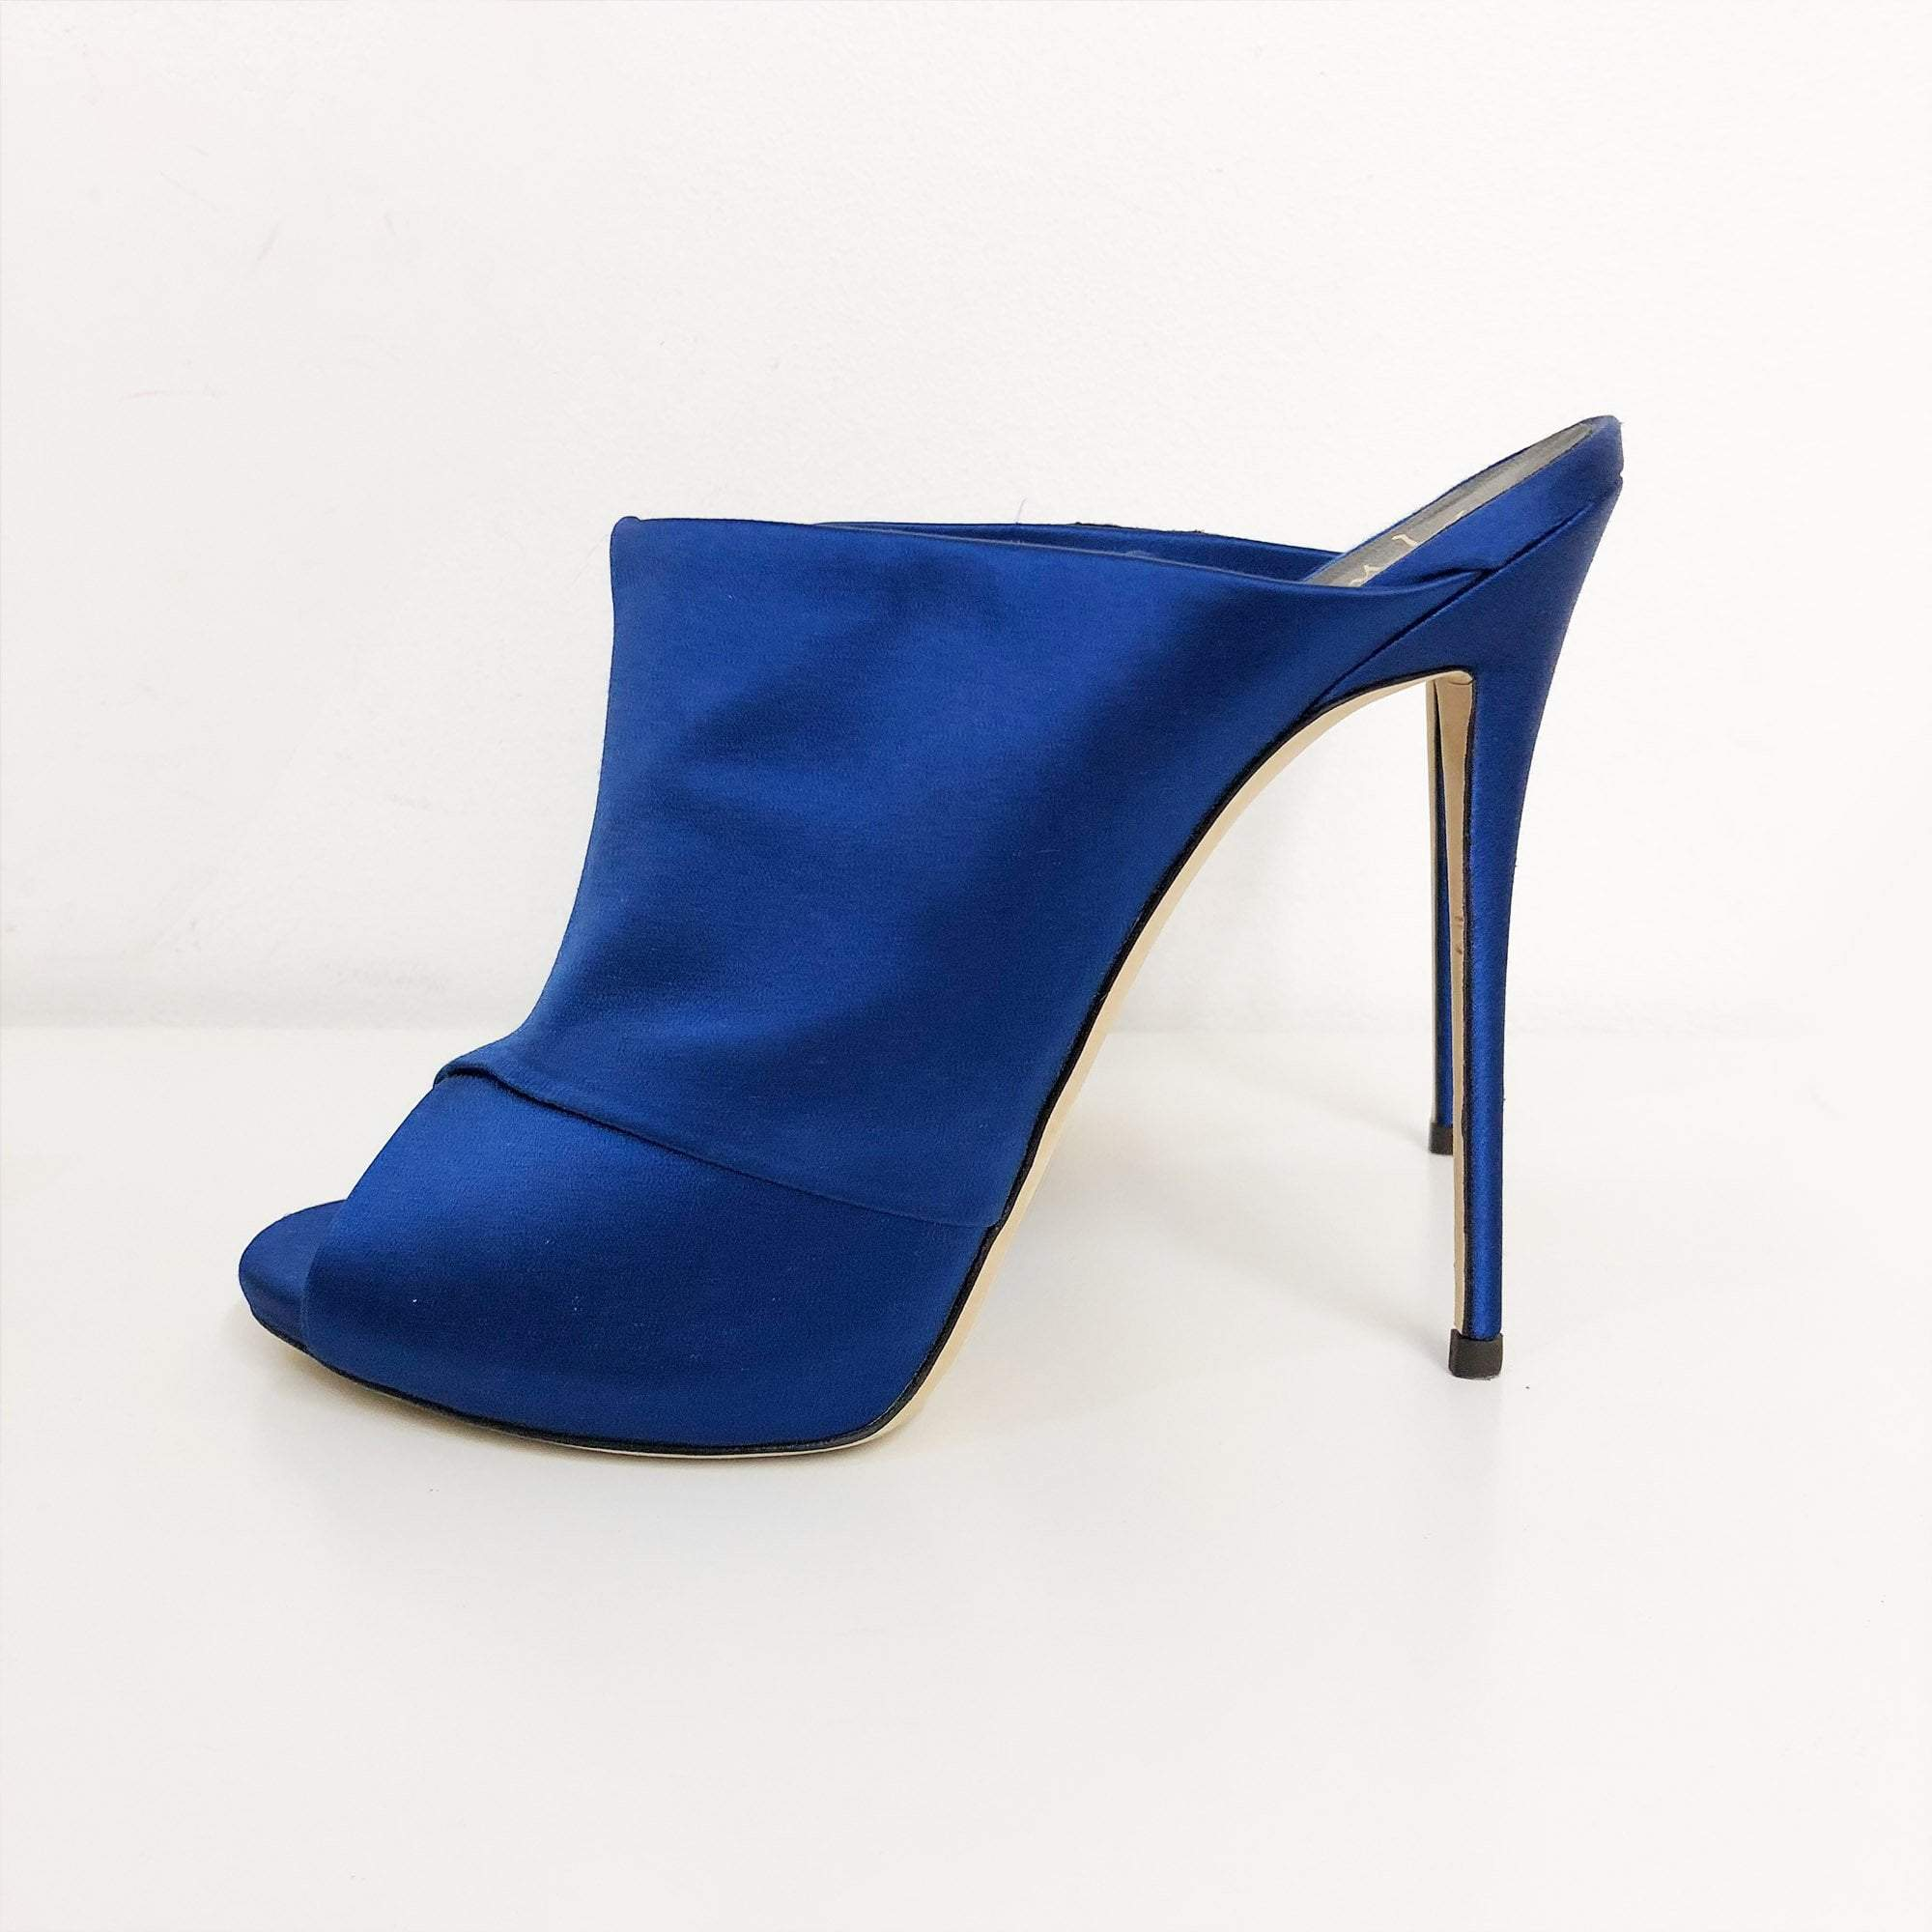 Giuseppe Zanotti Lady Mules With Blue Satin Wrap